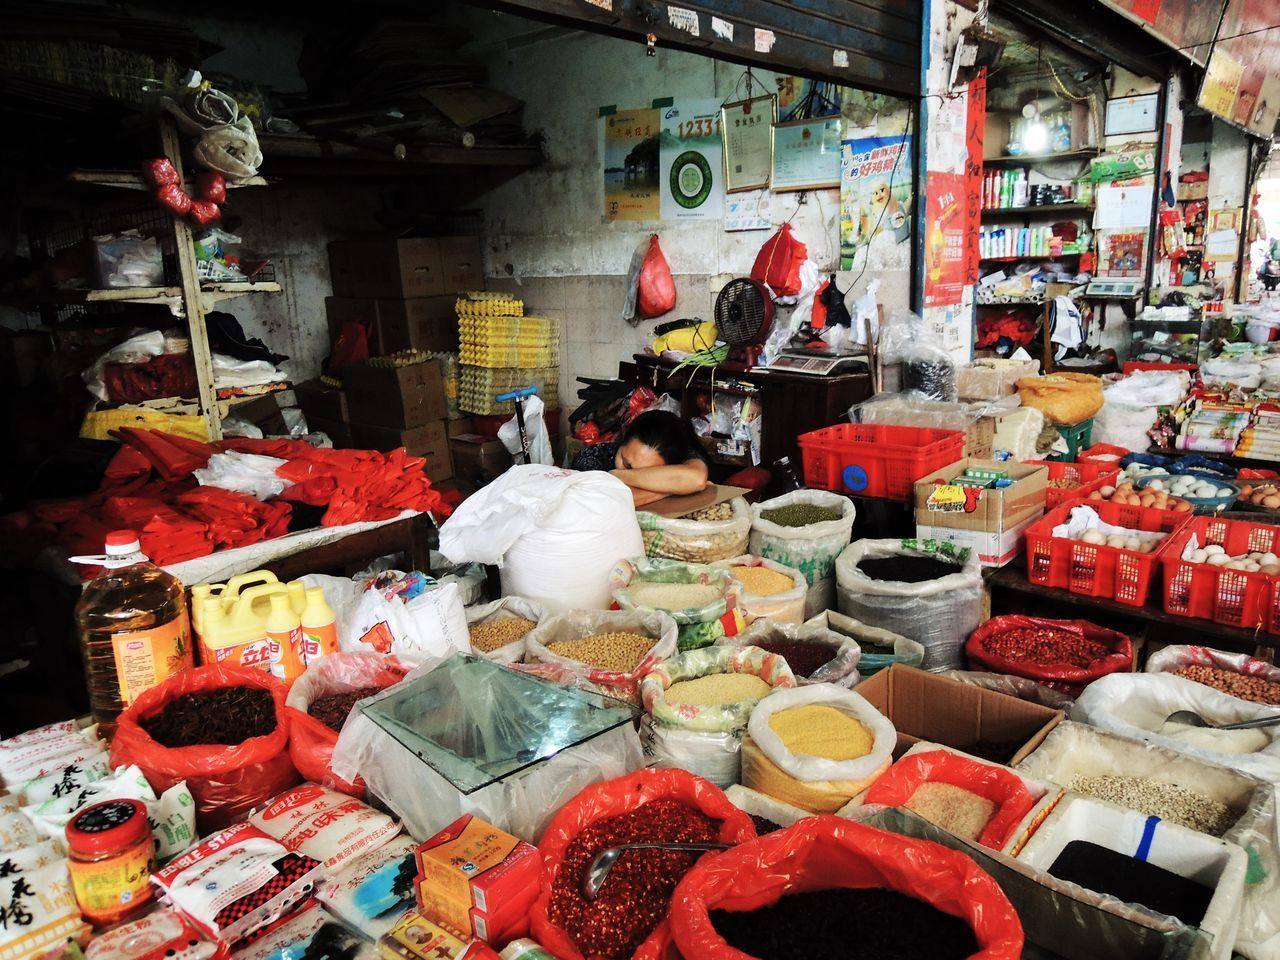 VIEW OF FOOD FOR SALE AT MARKET